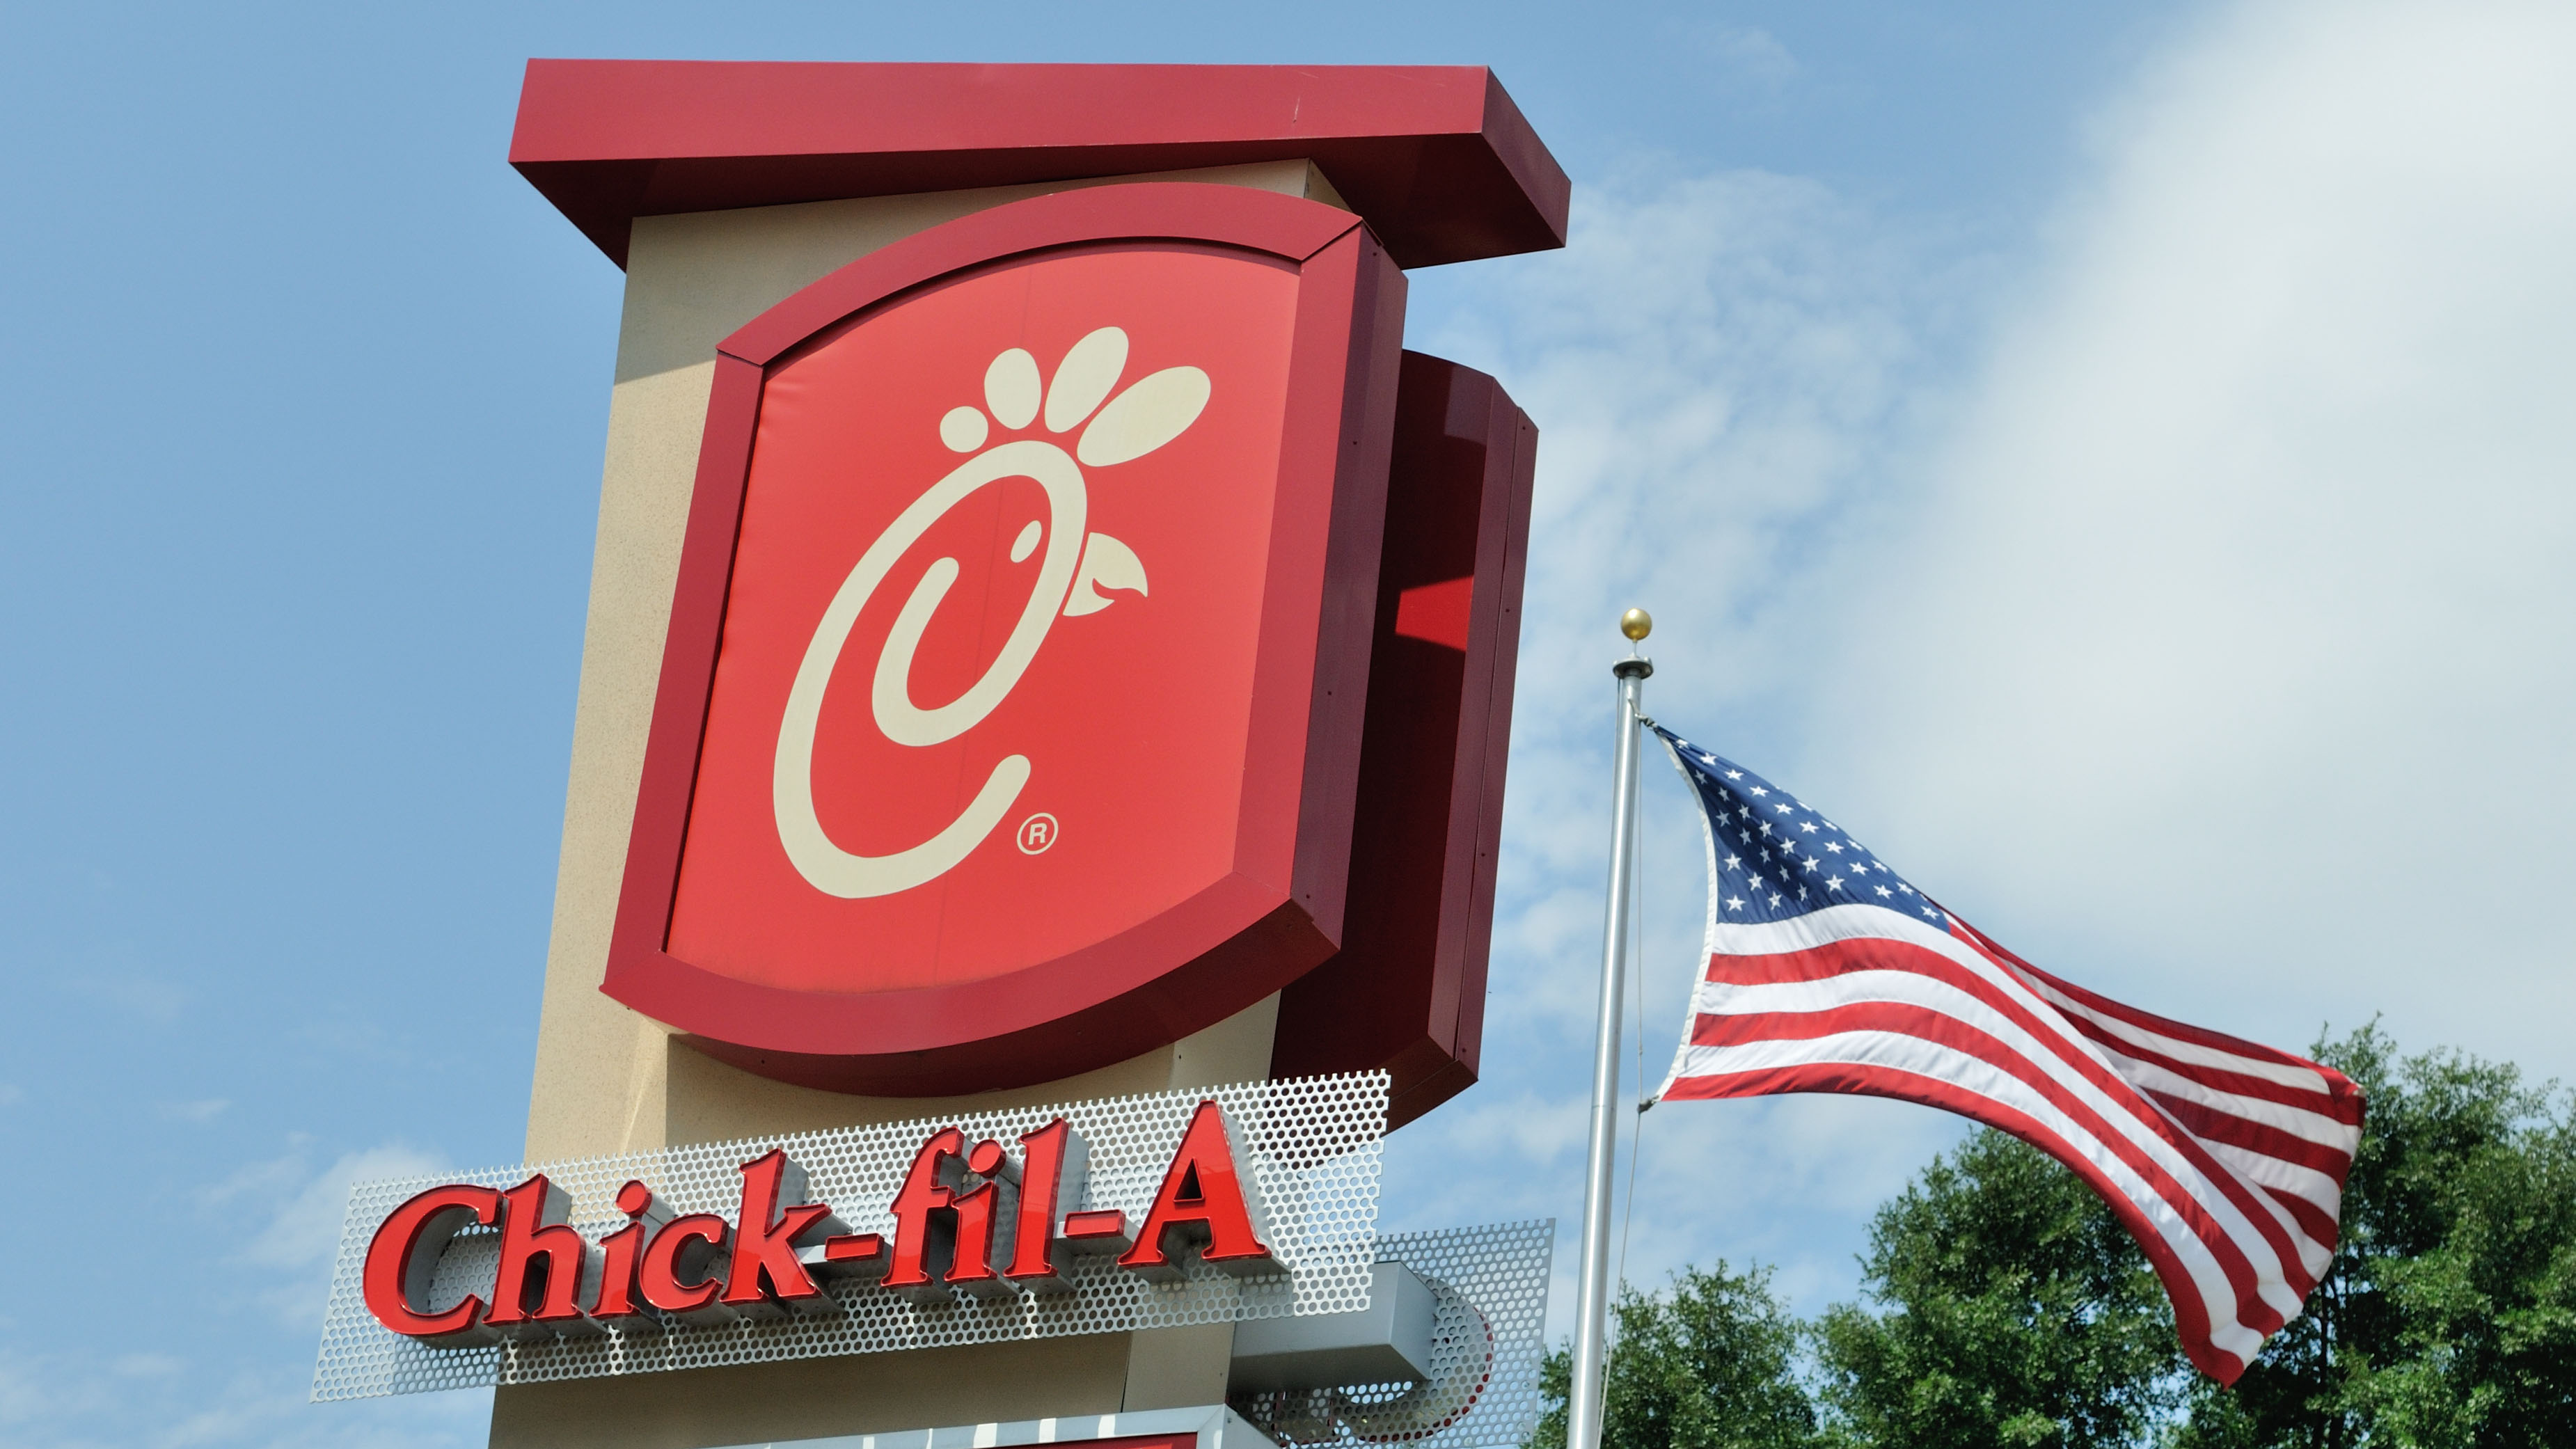 Chick-fil-A no longer pursuing space in Texas airport  image